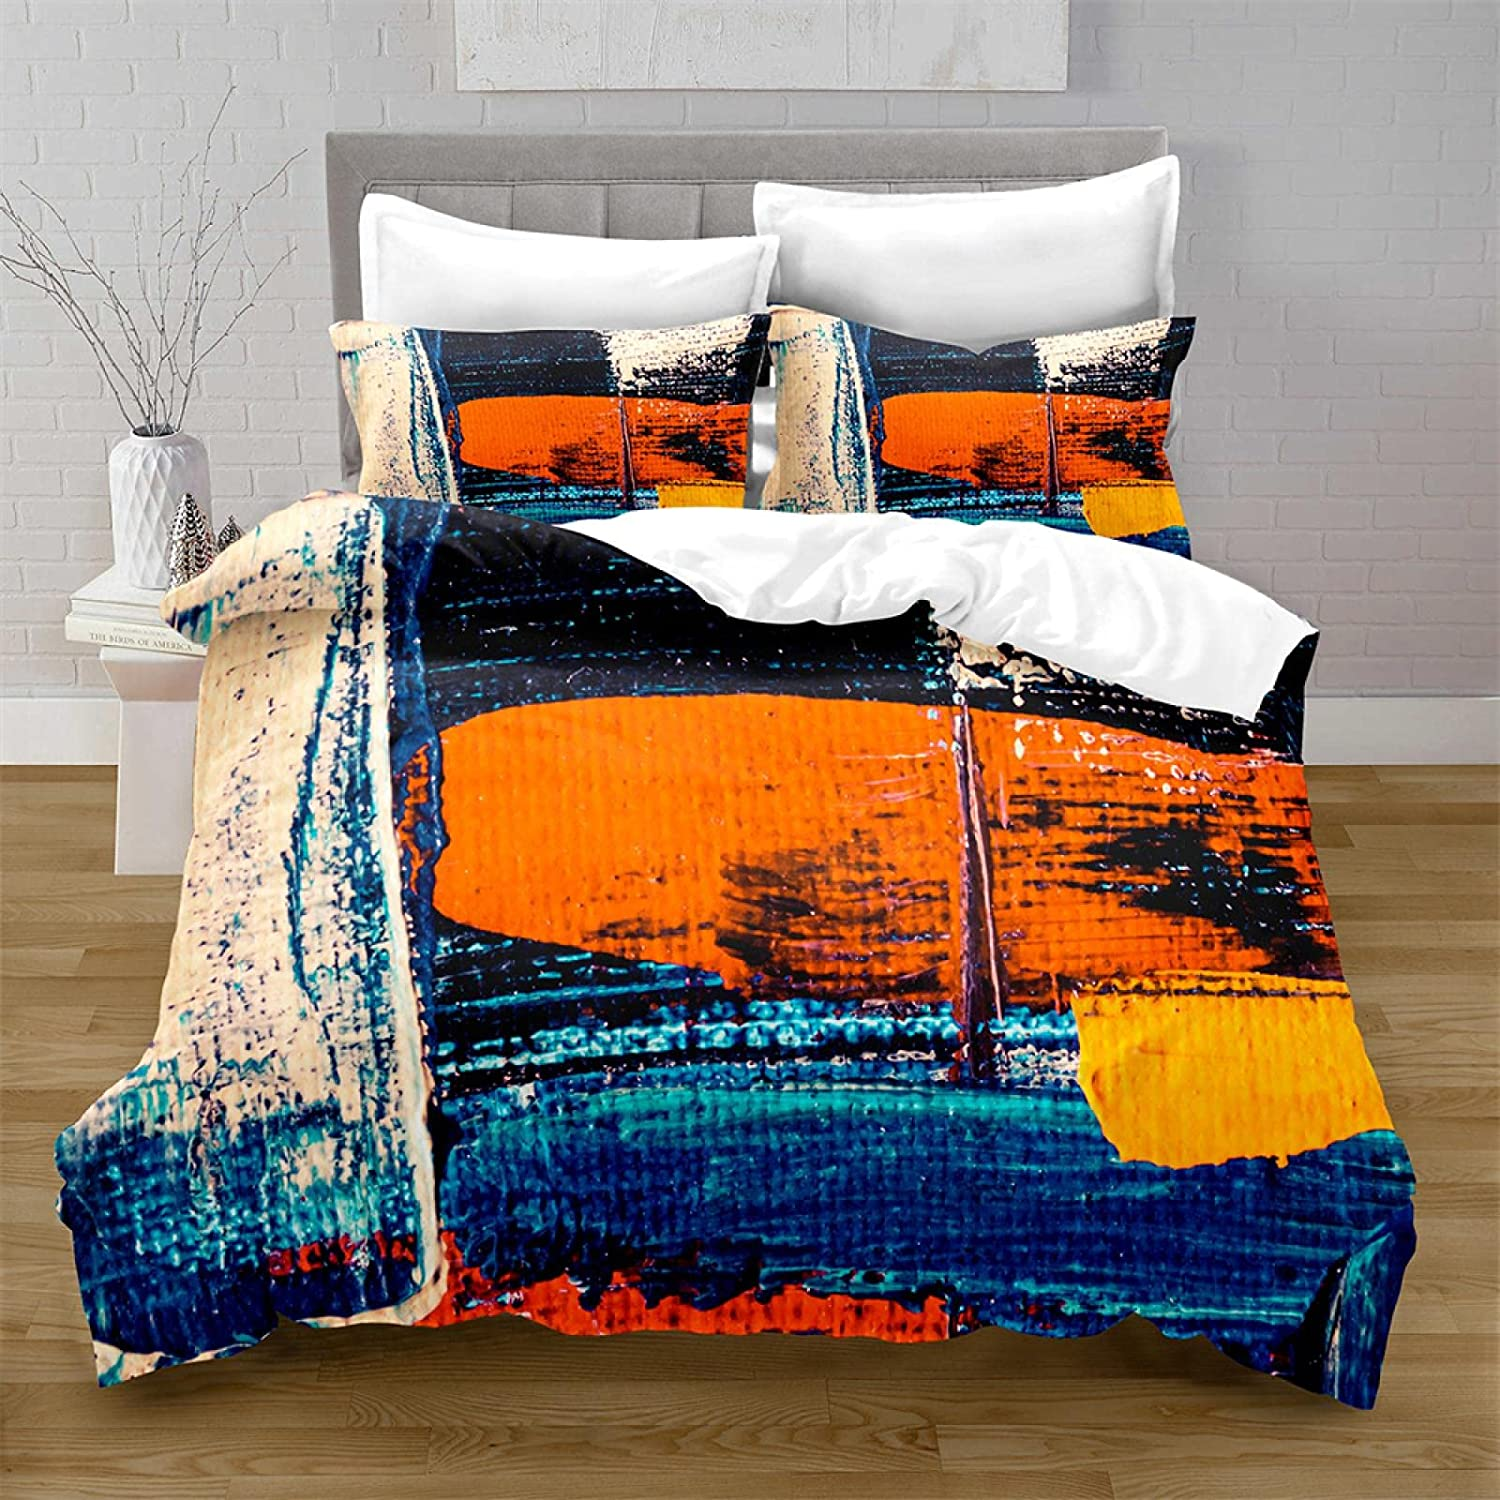 HQHM Duvet Cover King 3 Pieces Ranking TOP8 Multicolor Sale price 61 Retro Stitching Art